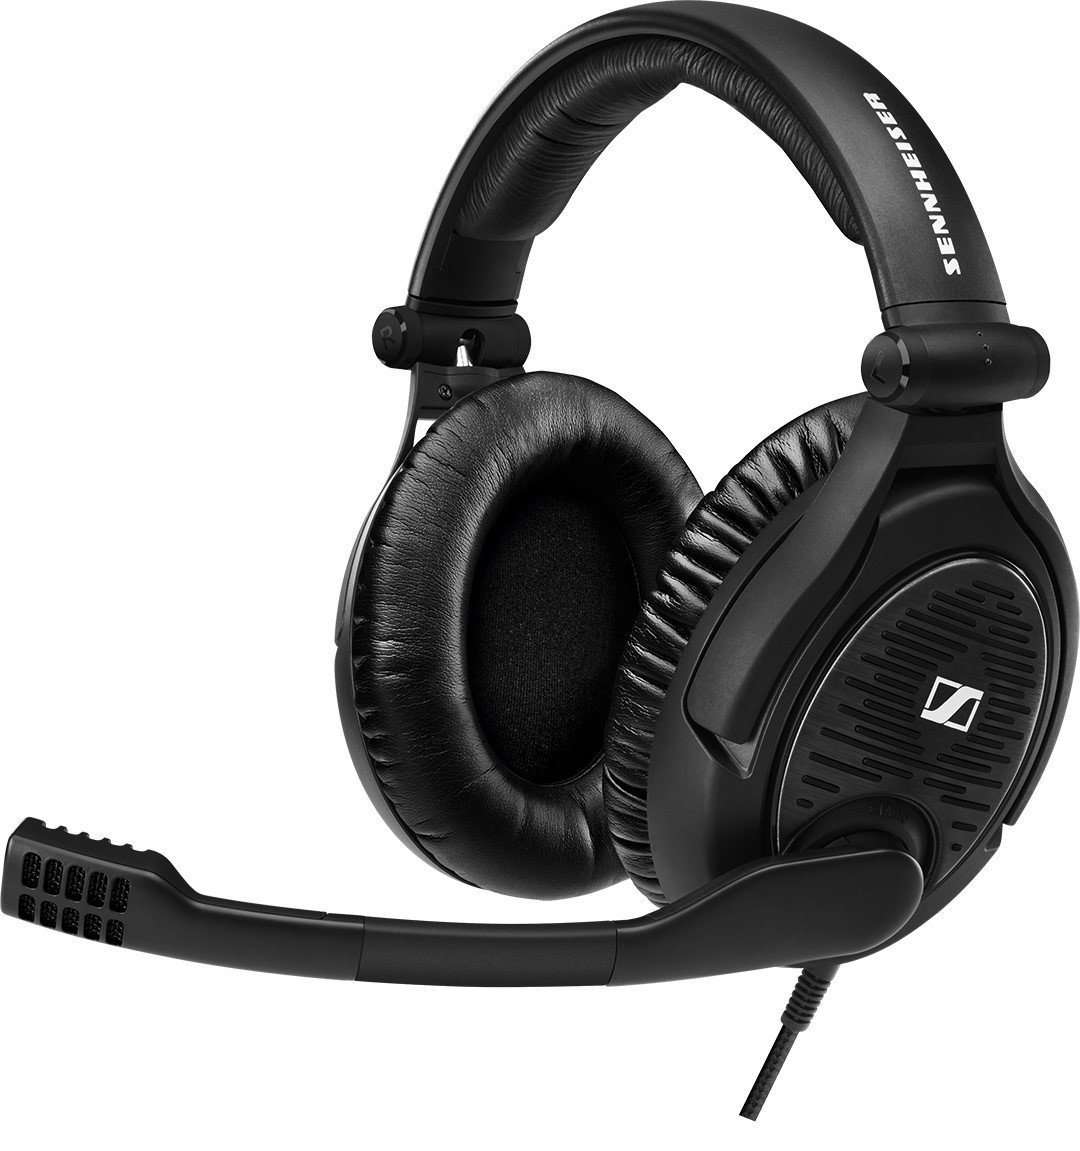 Sennheiser GAME ZERO Special Edition Gaming Headset by Sennheiser